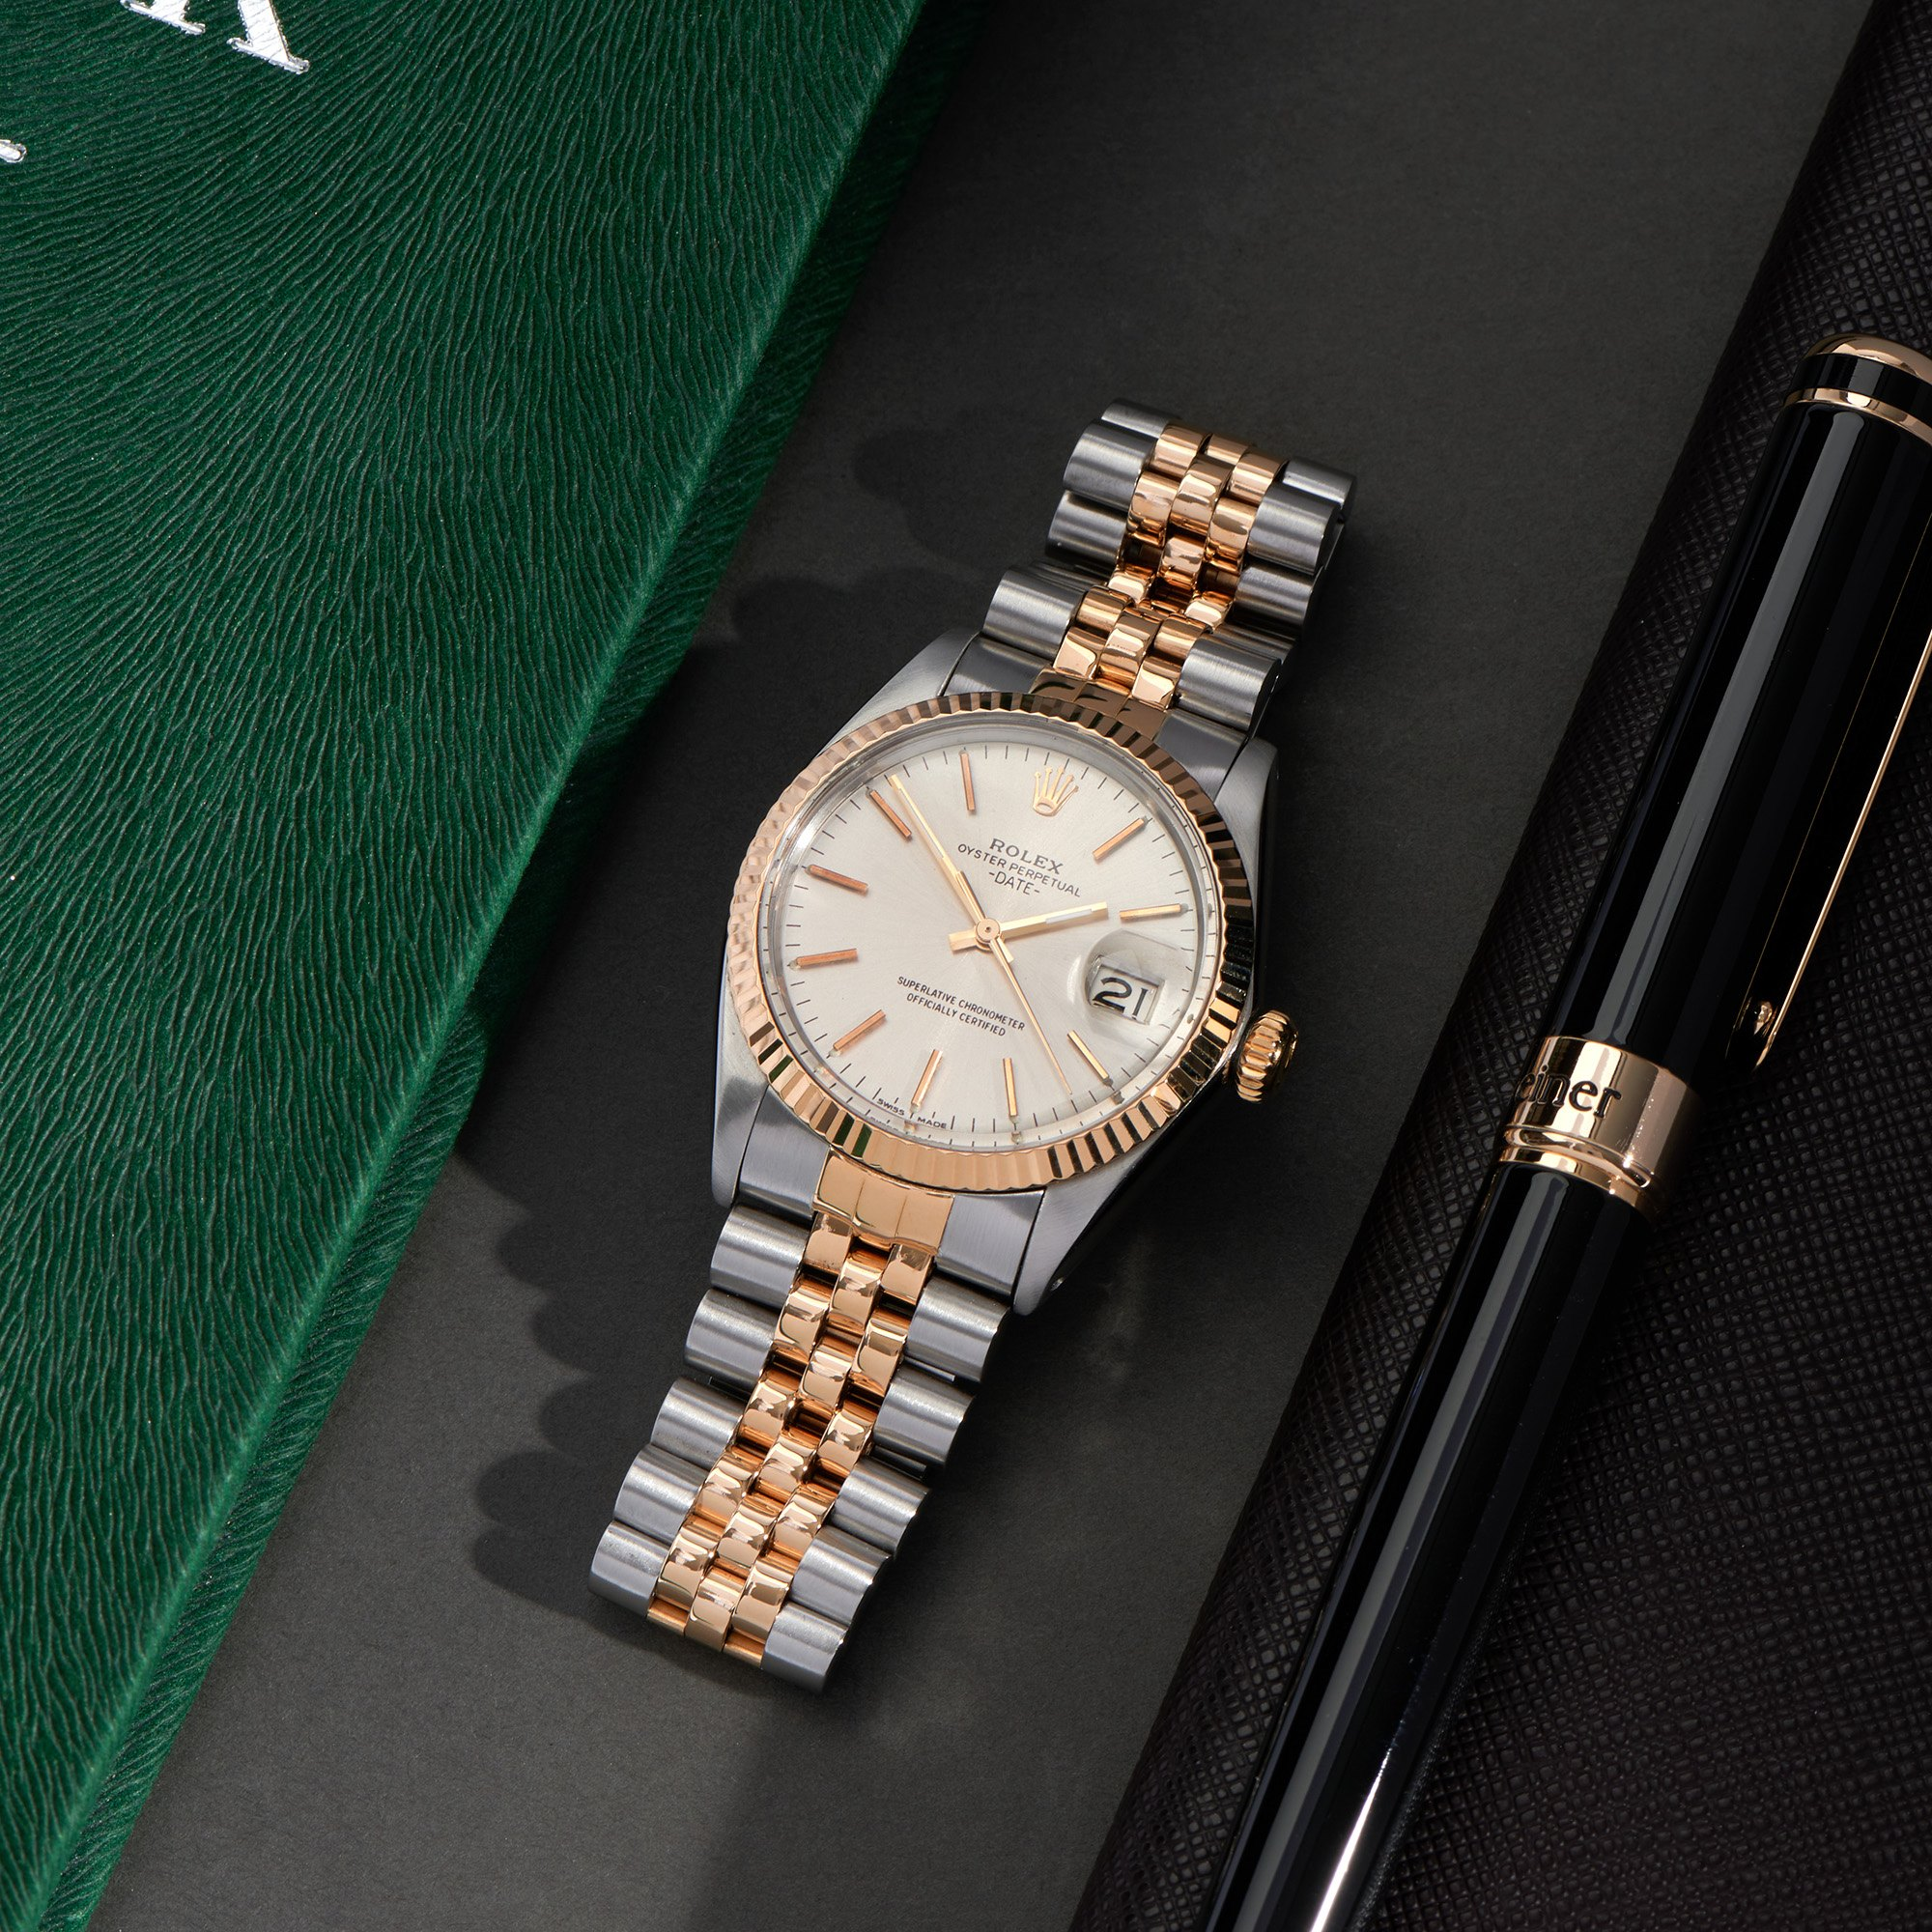 Rolex Oyster Perpetual 18K Yellow Gold & Stainless Steel 1505